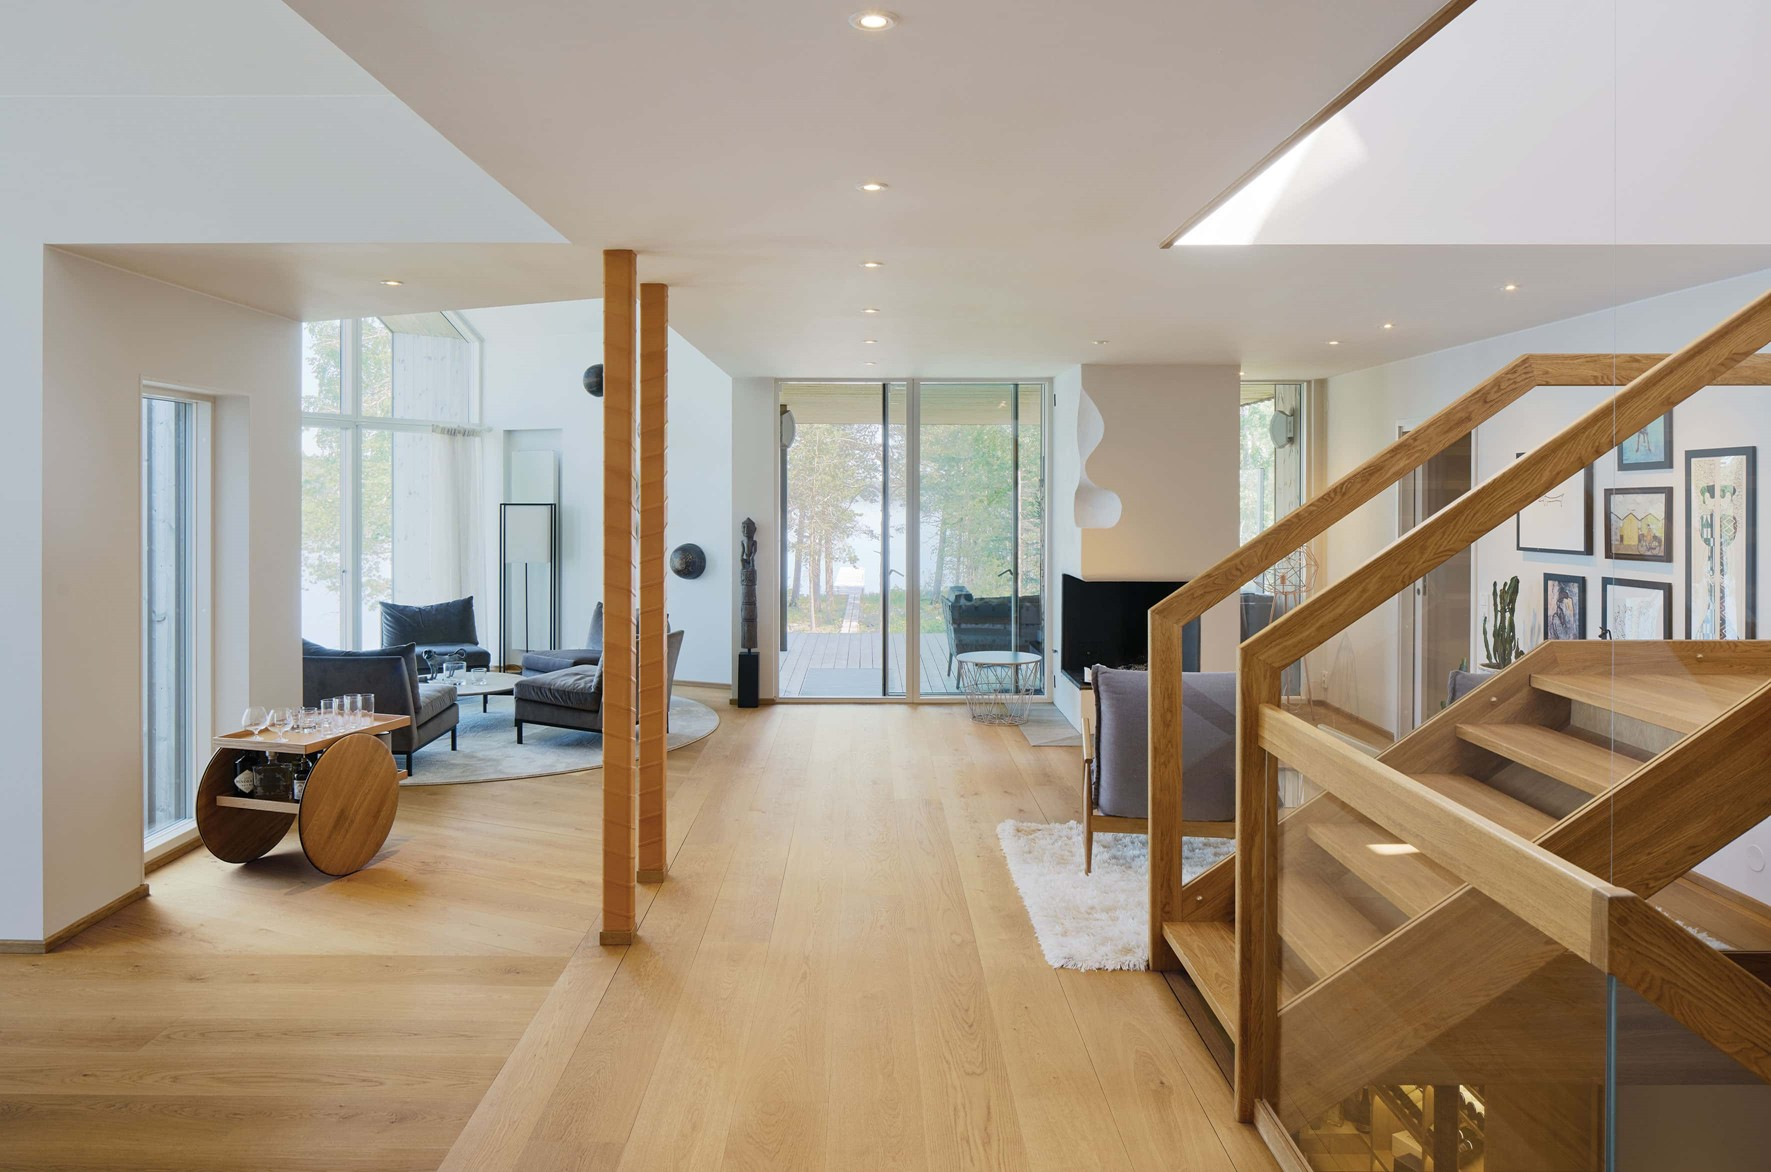 oak-flooring_natural-oil_villa-sunnano_oak-living-room_dinesen.jpg